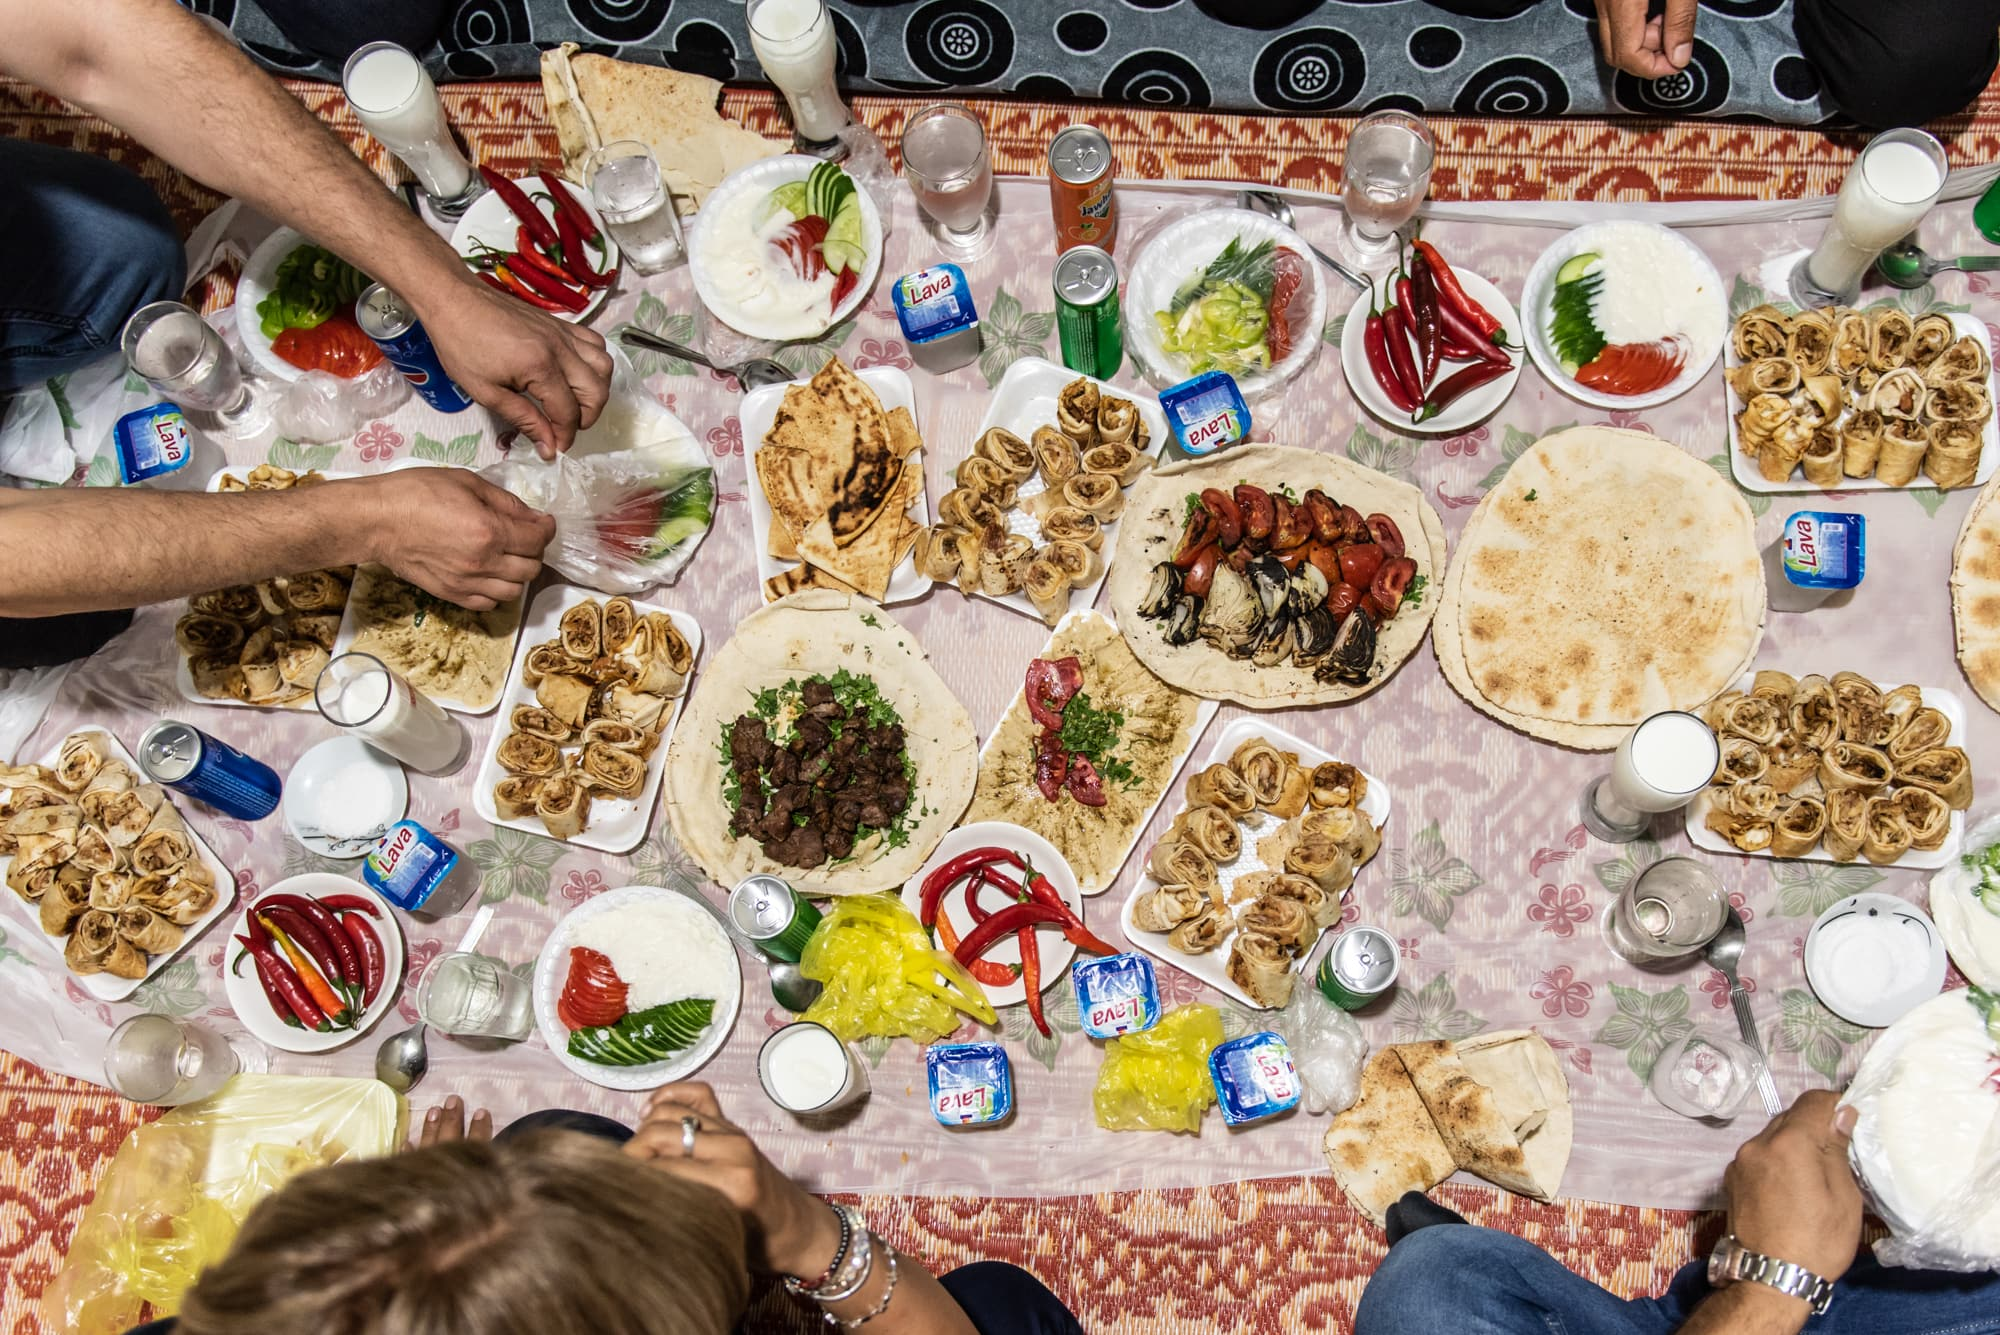 Syrian Food at Gawilan refugee camp, Iraq, on Sept 2nd, 2019.